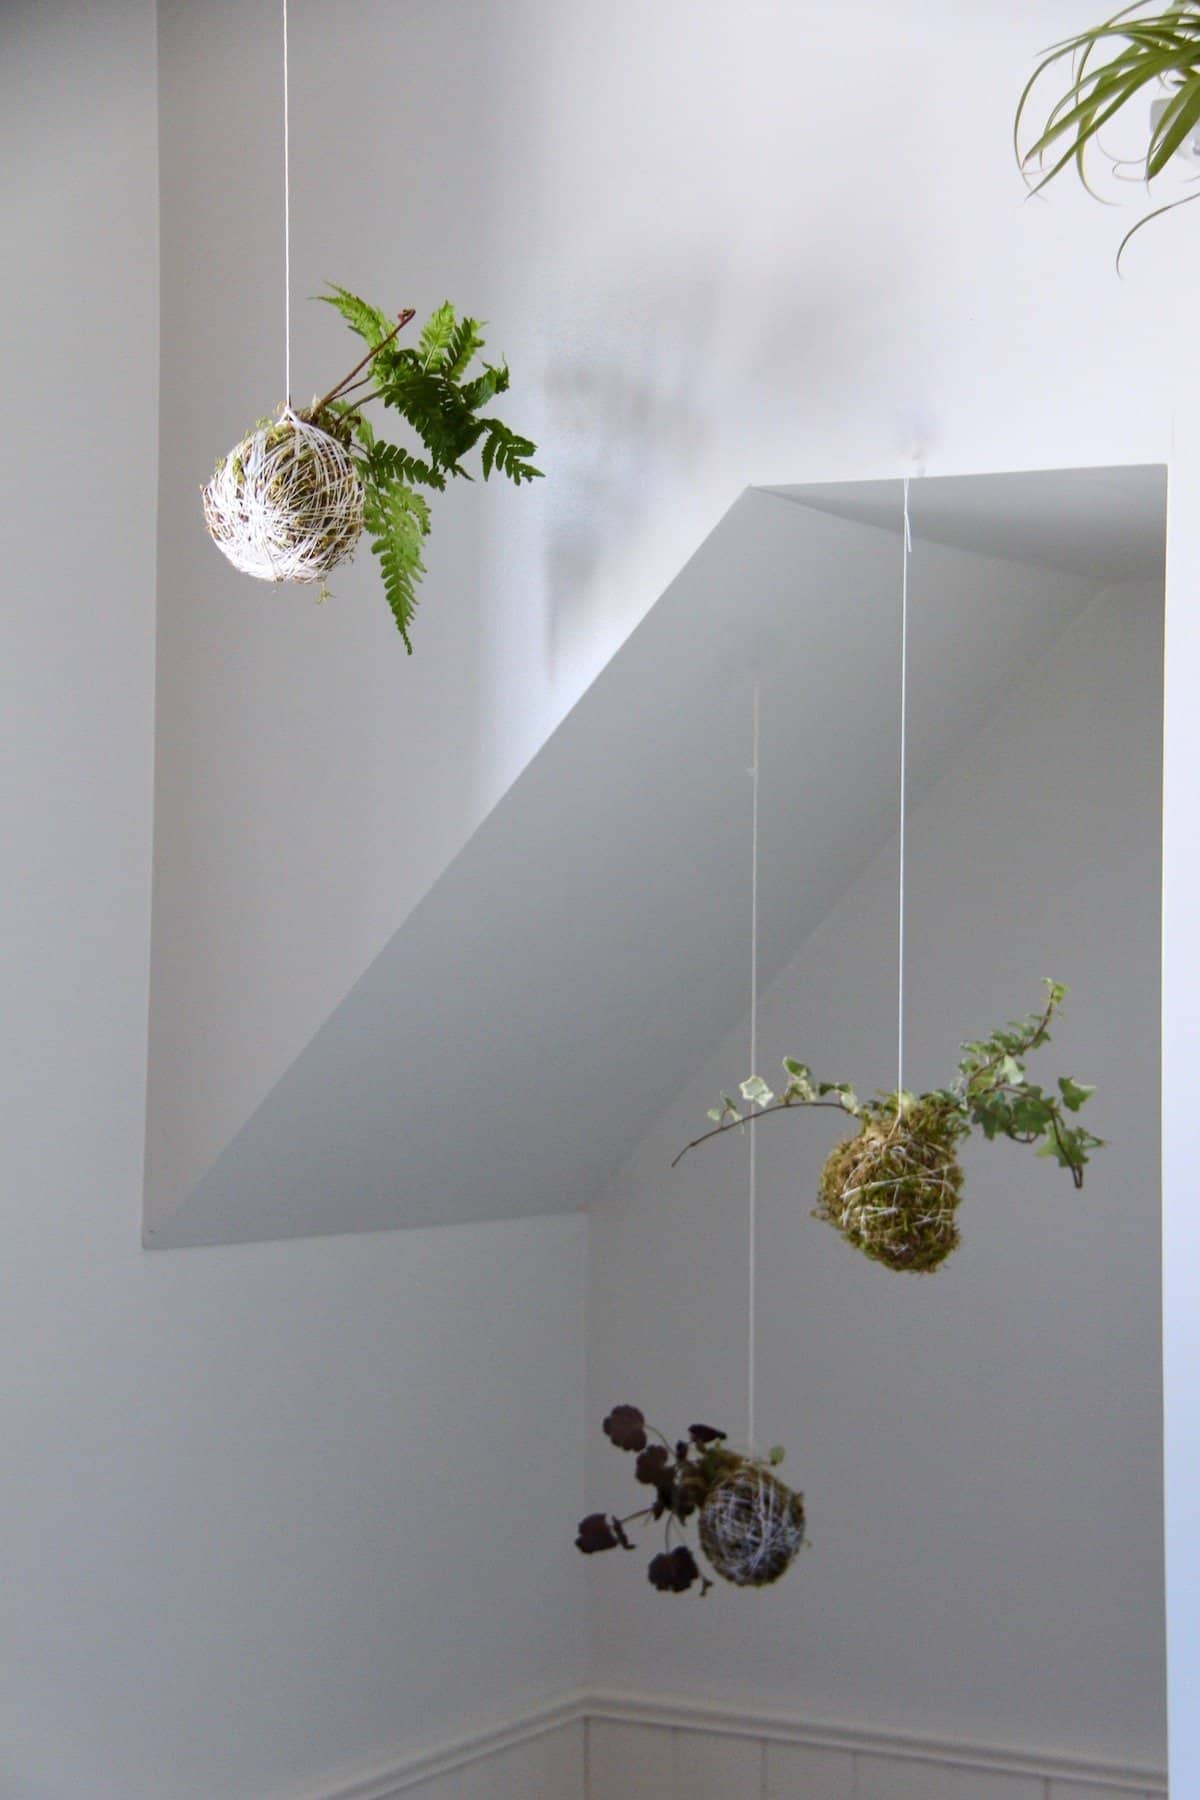 Three hanging moss ball string garden kokedama against a white wall with an alcove